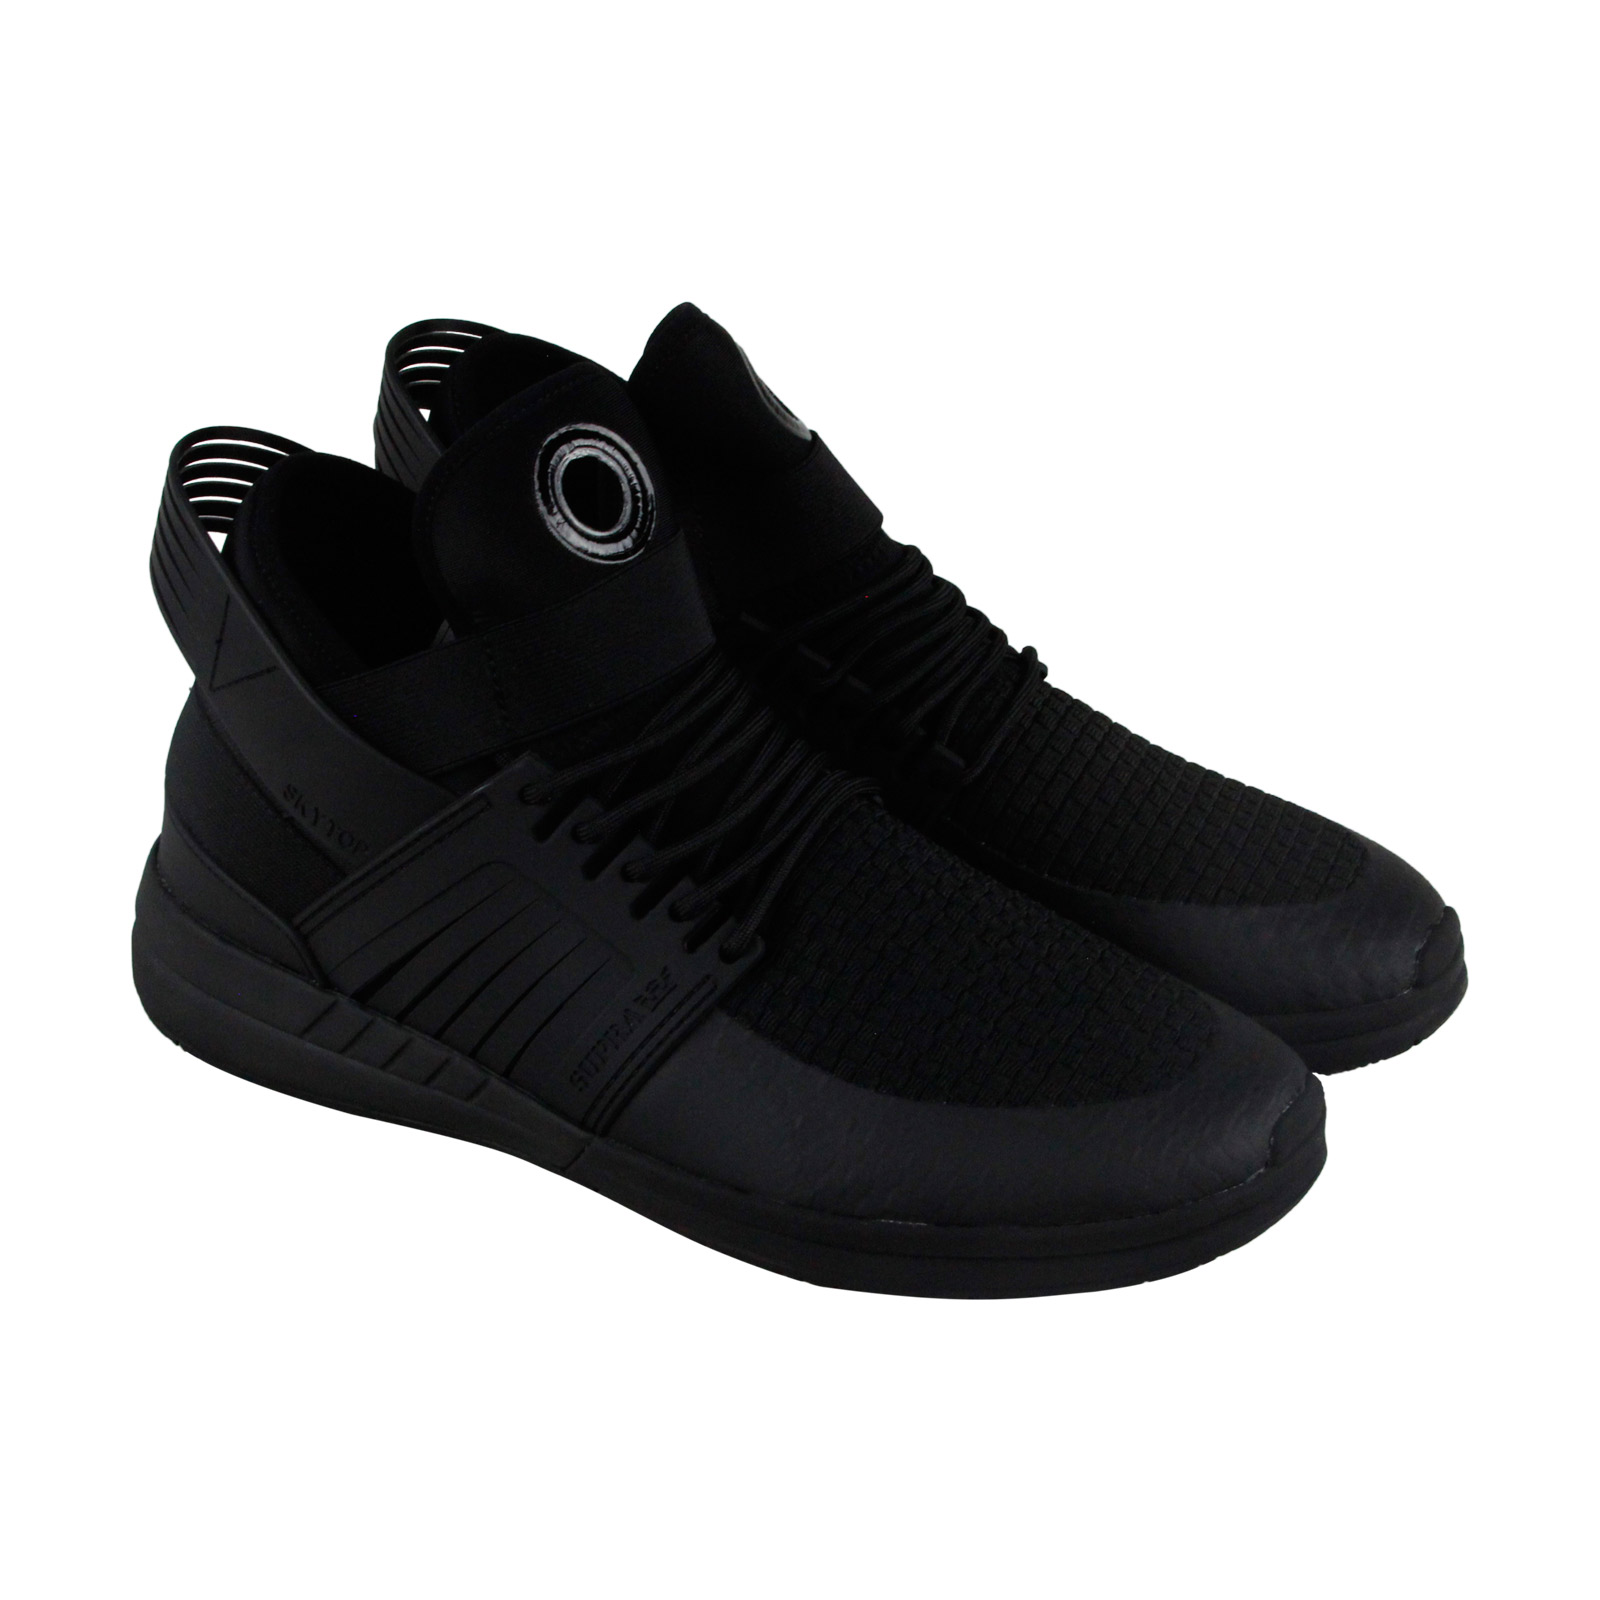 Supra Skytop V Mens Black Leather High Top Lace Up Sneakers Shoes